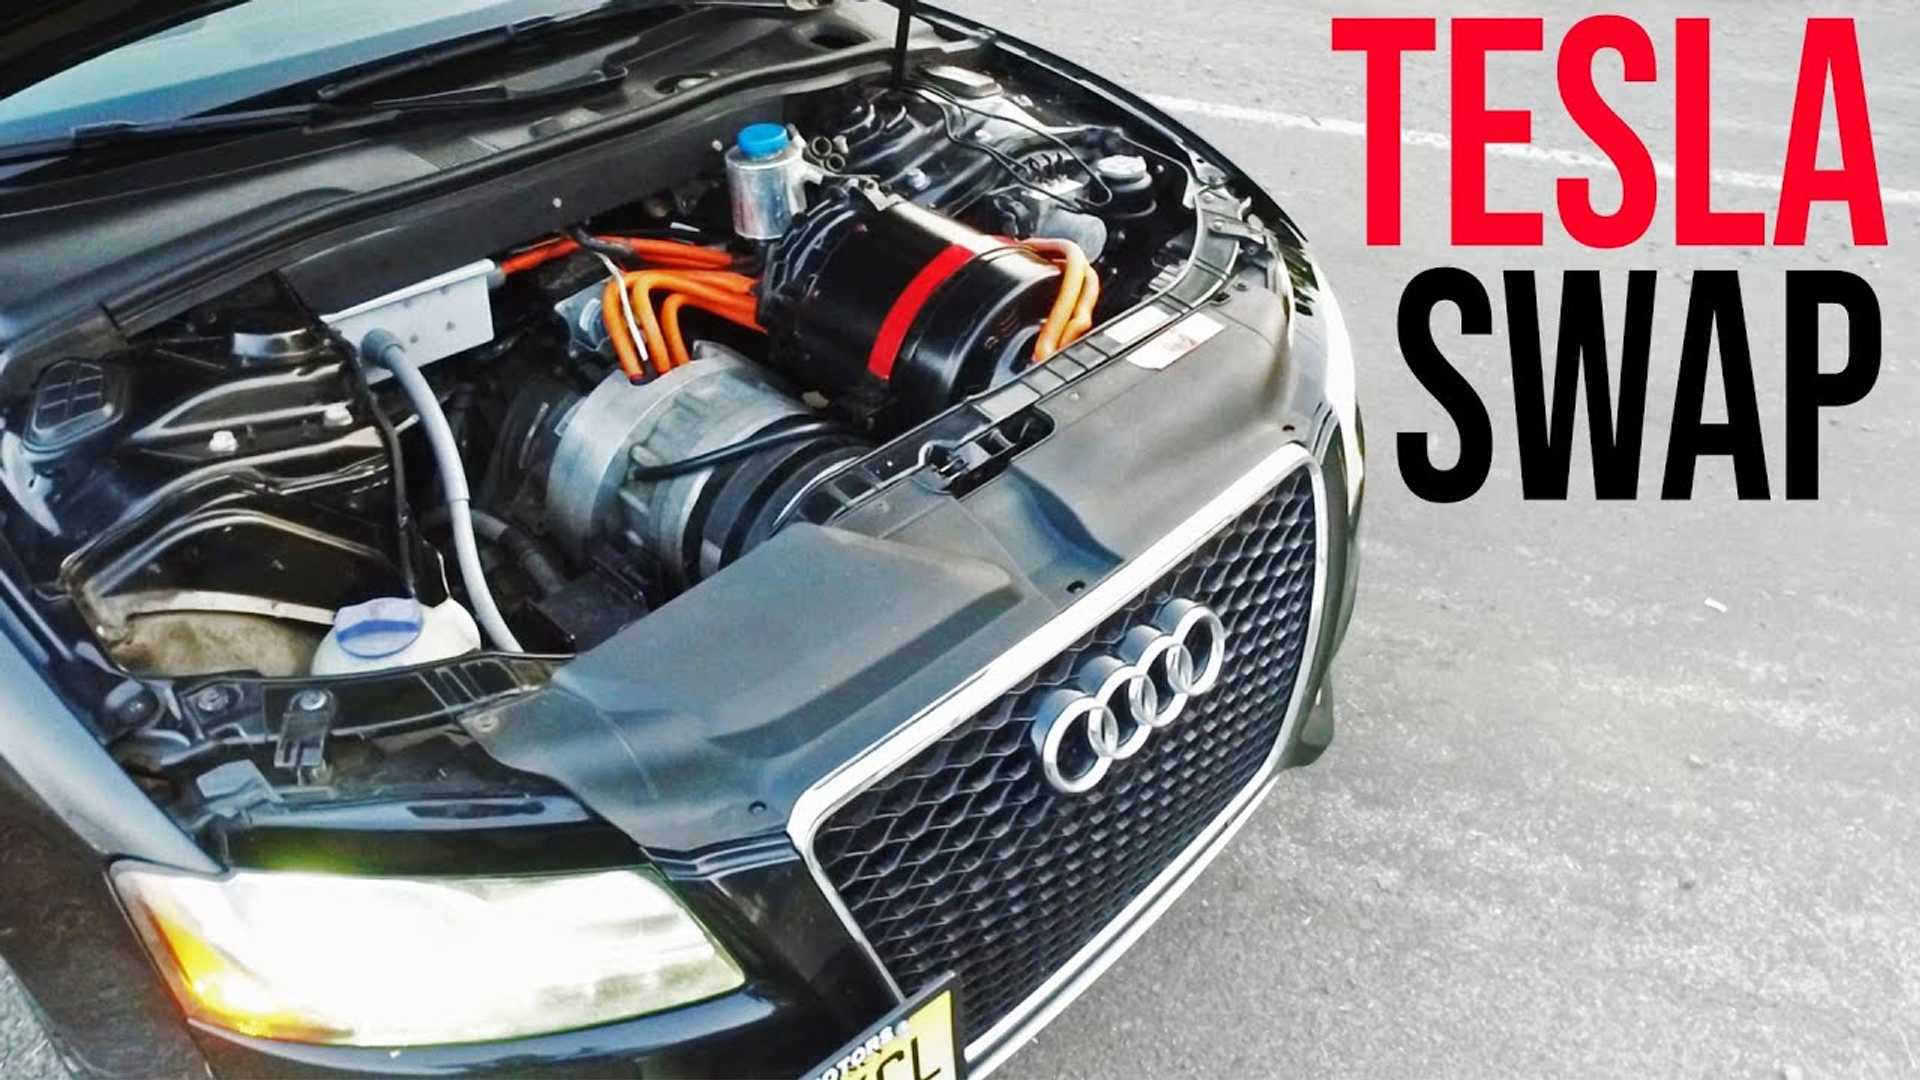 Motor Swap? Check Out This Audi S5 With A Tesla Model S Soul